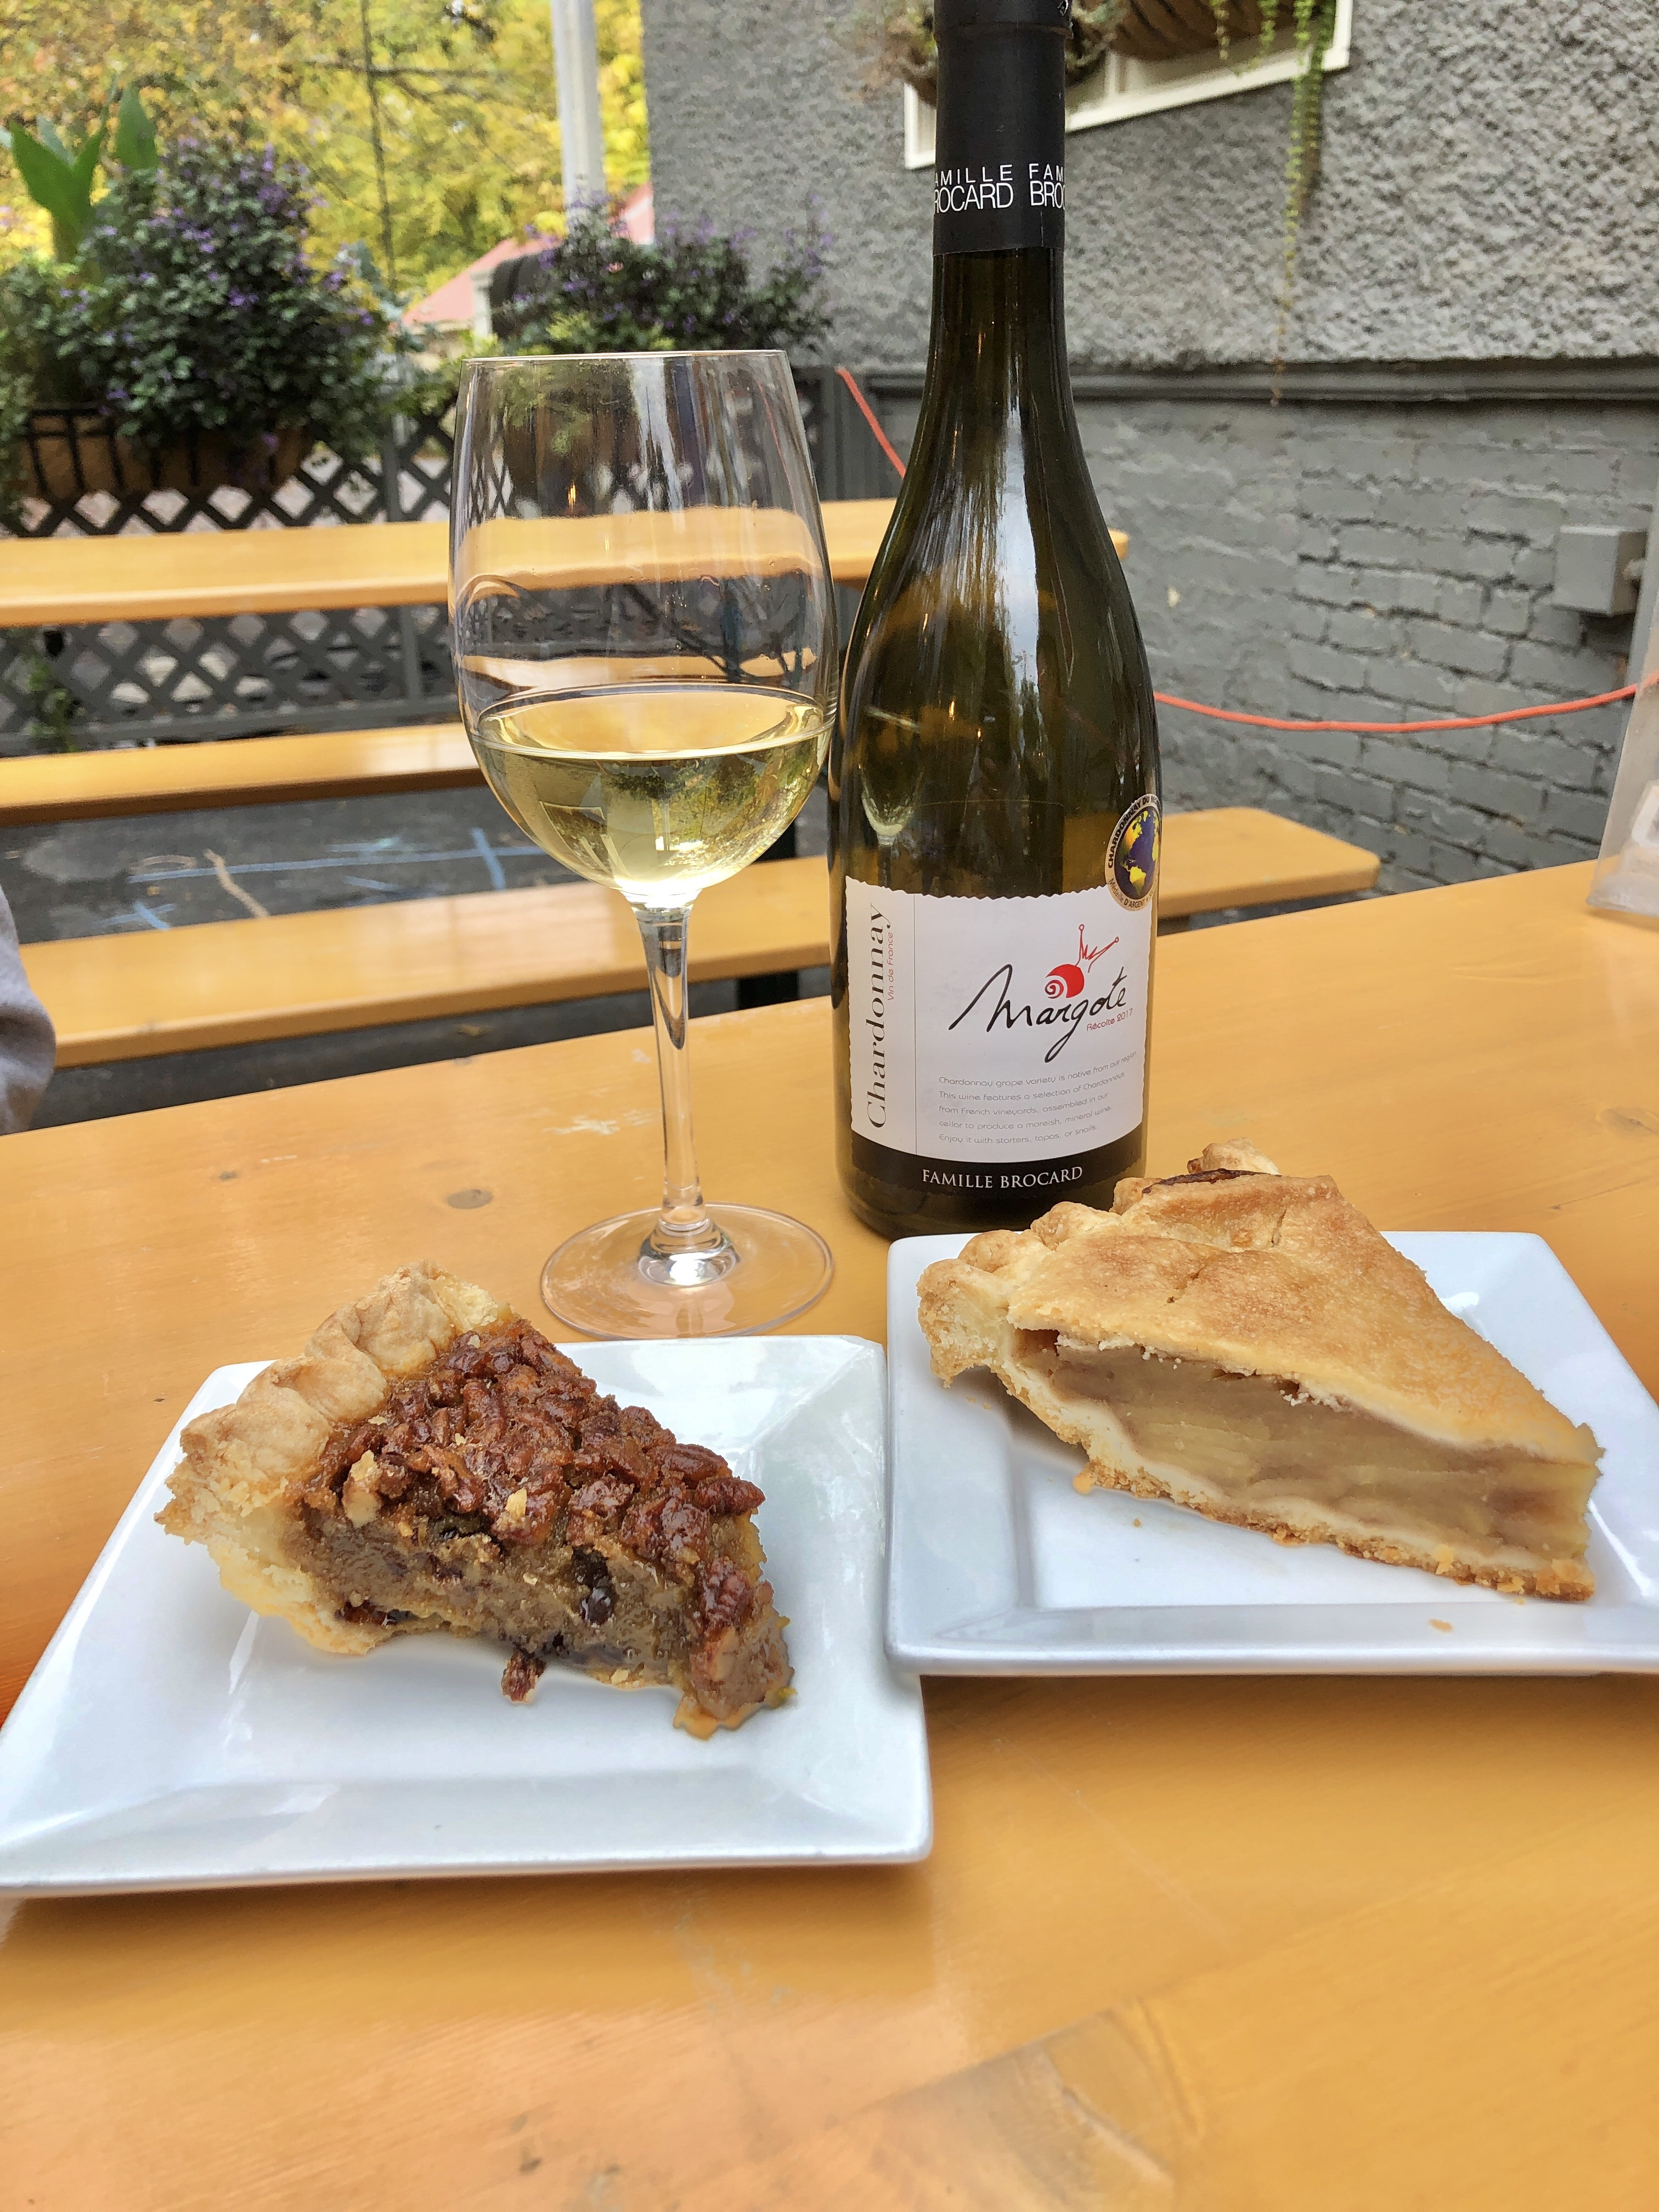 Wine and pie for dessert at The Girl and The Vine in Takoma Park, Maryland